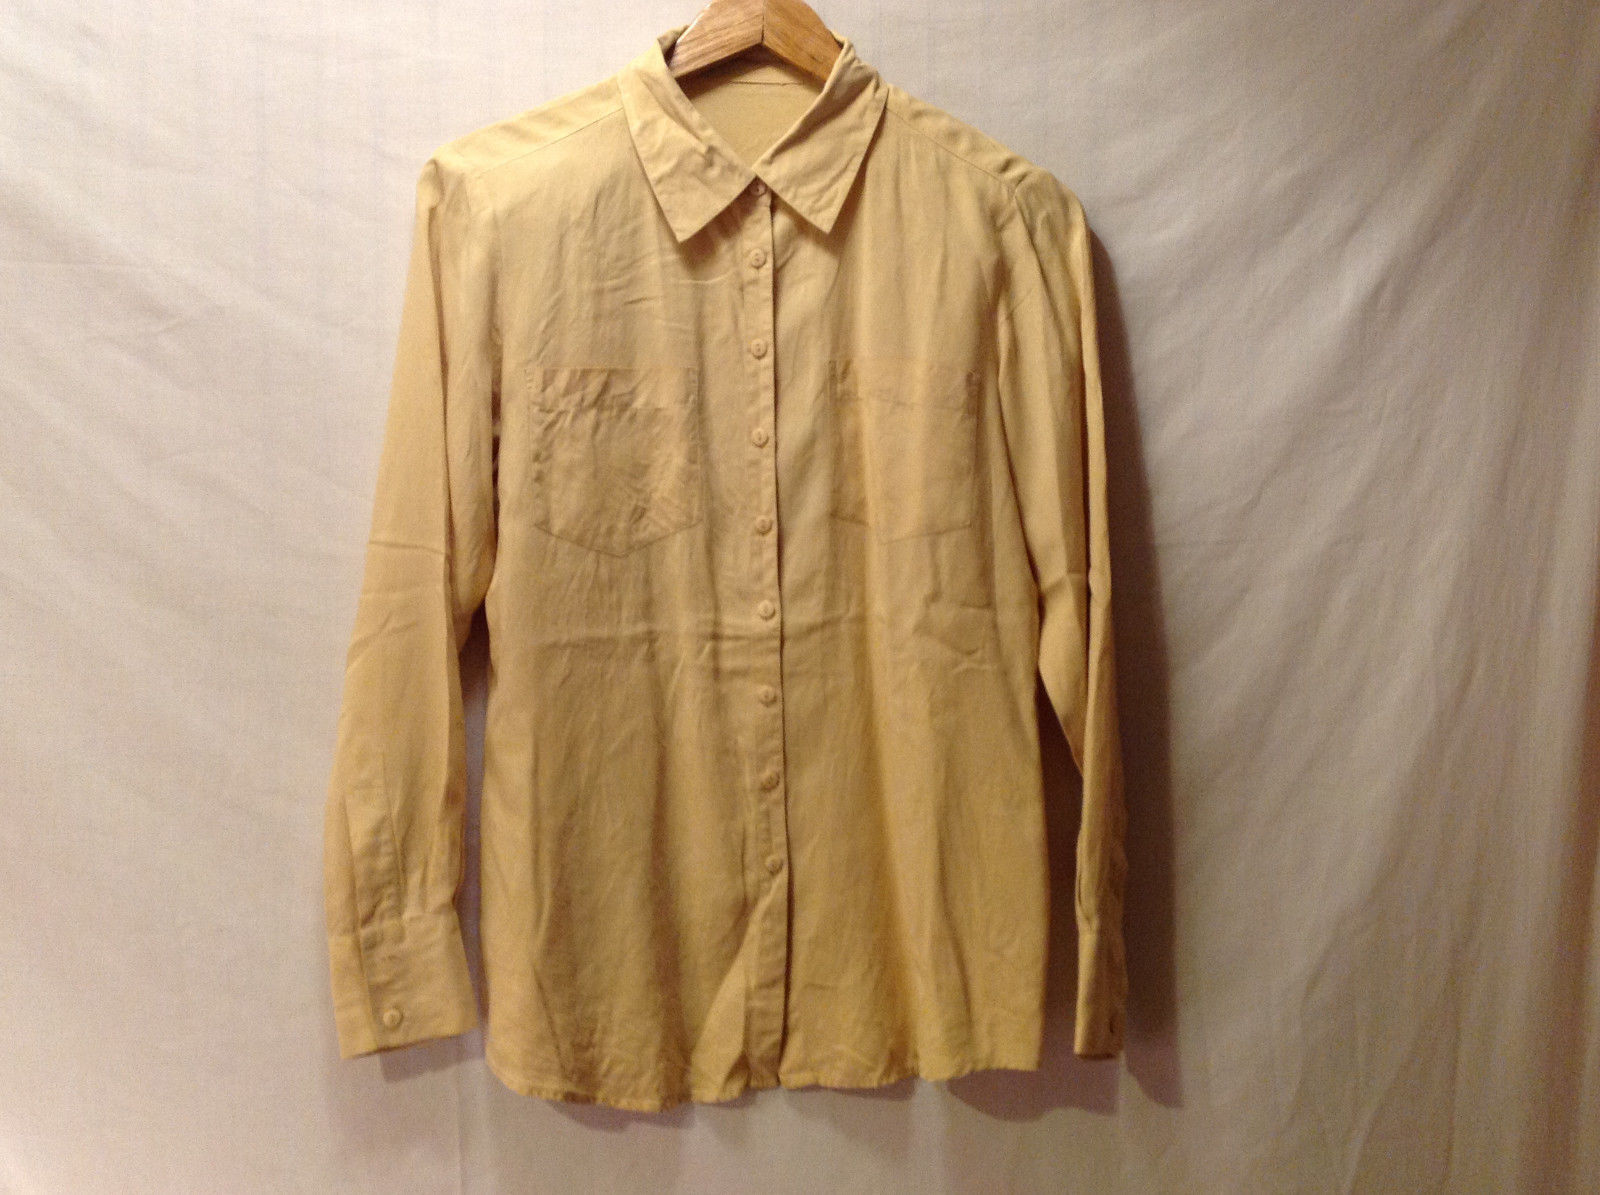 No Brand Women's Size L Button-Down Shirt Blouse Top Butter Yellow Long Sleeves